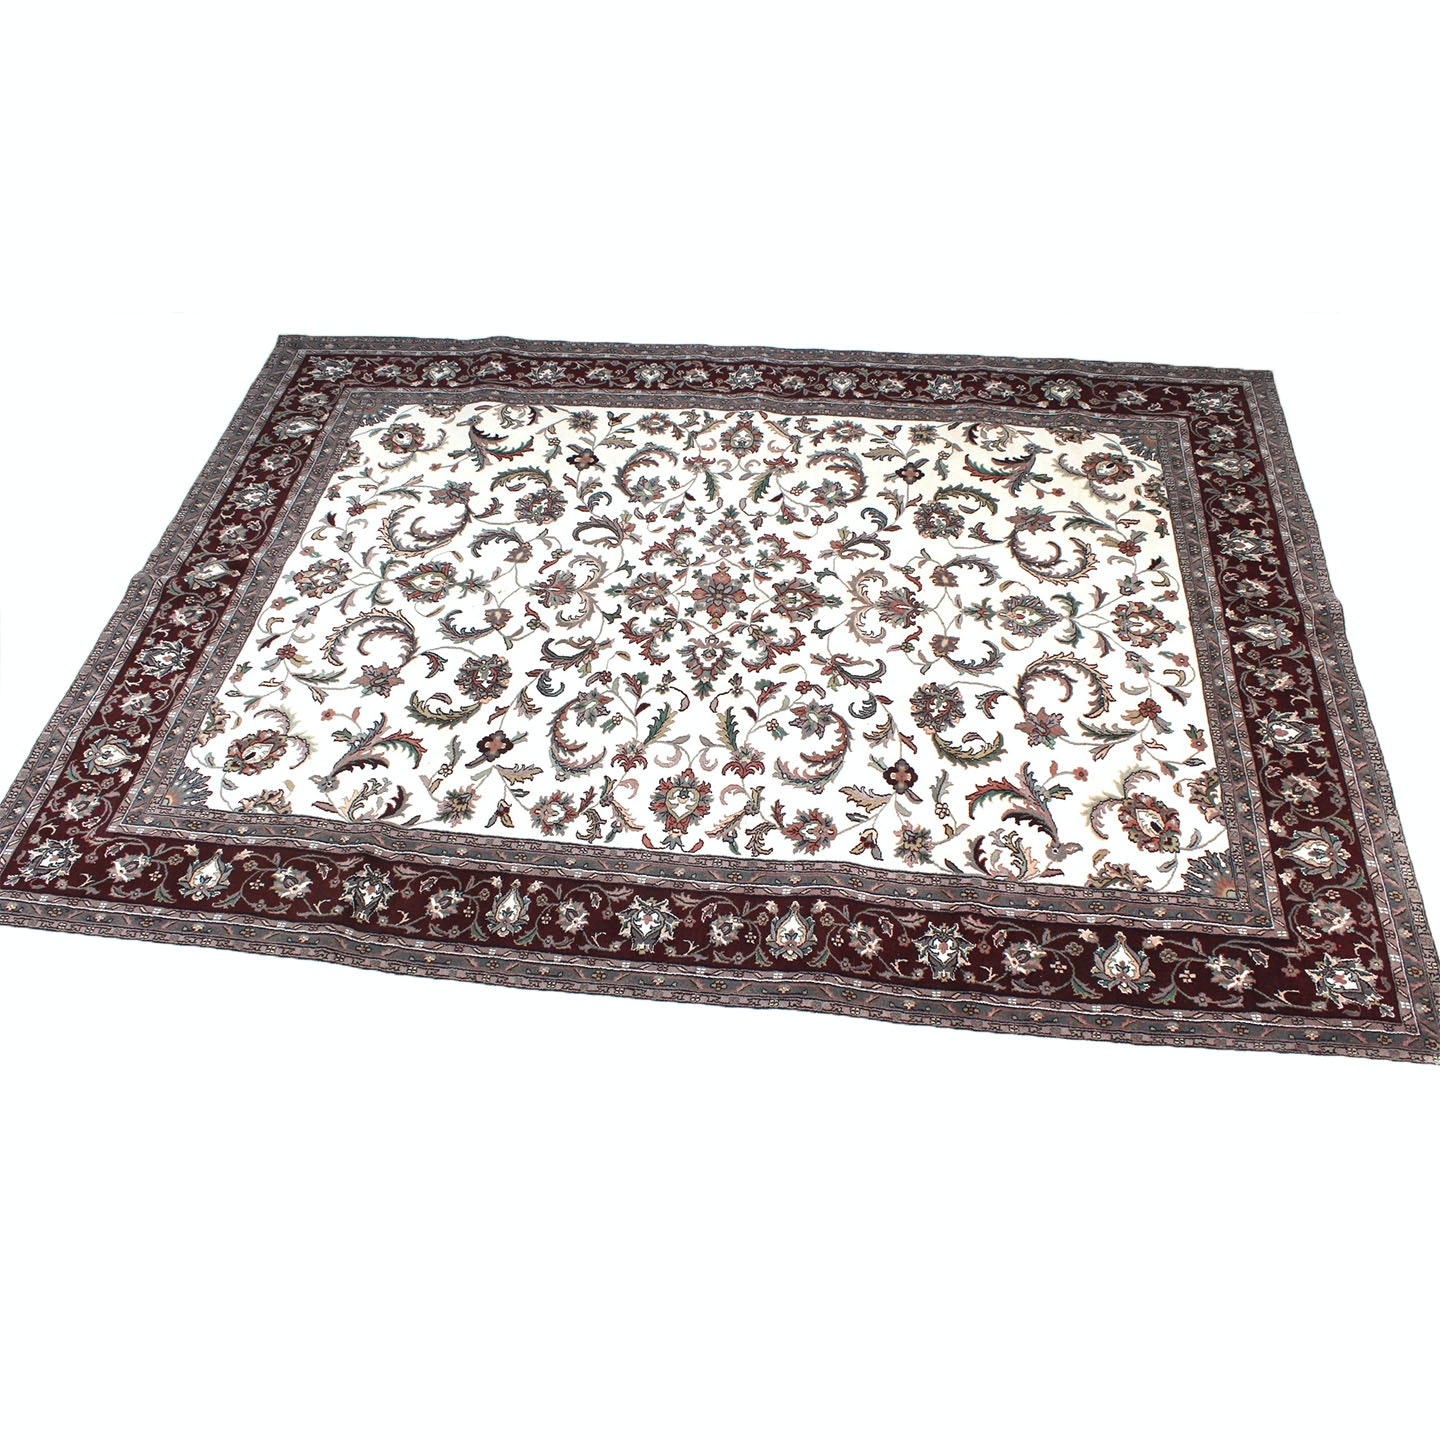 Hand-Knotted Indo-Persian Kashan Room Size Rug